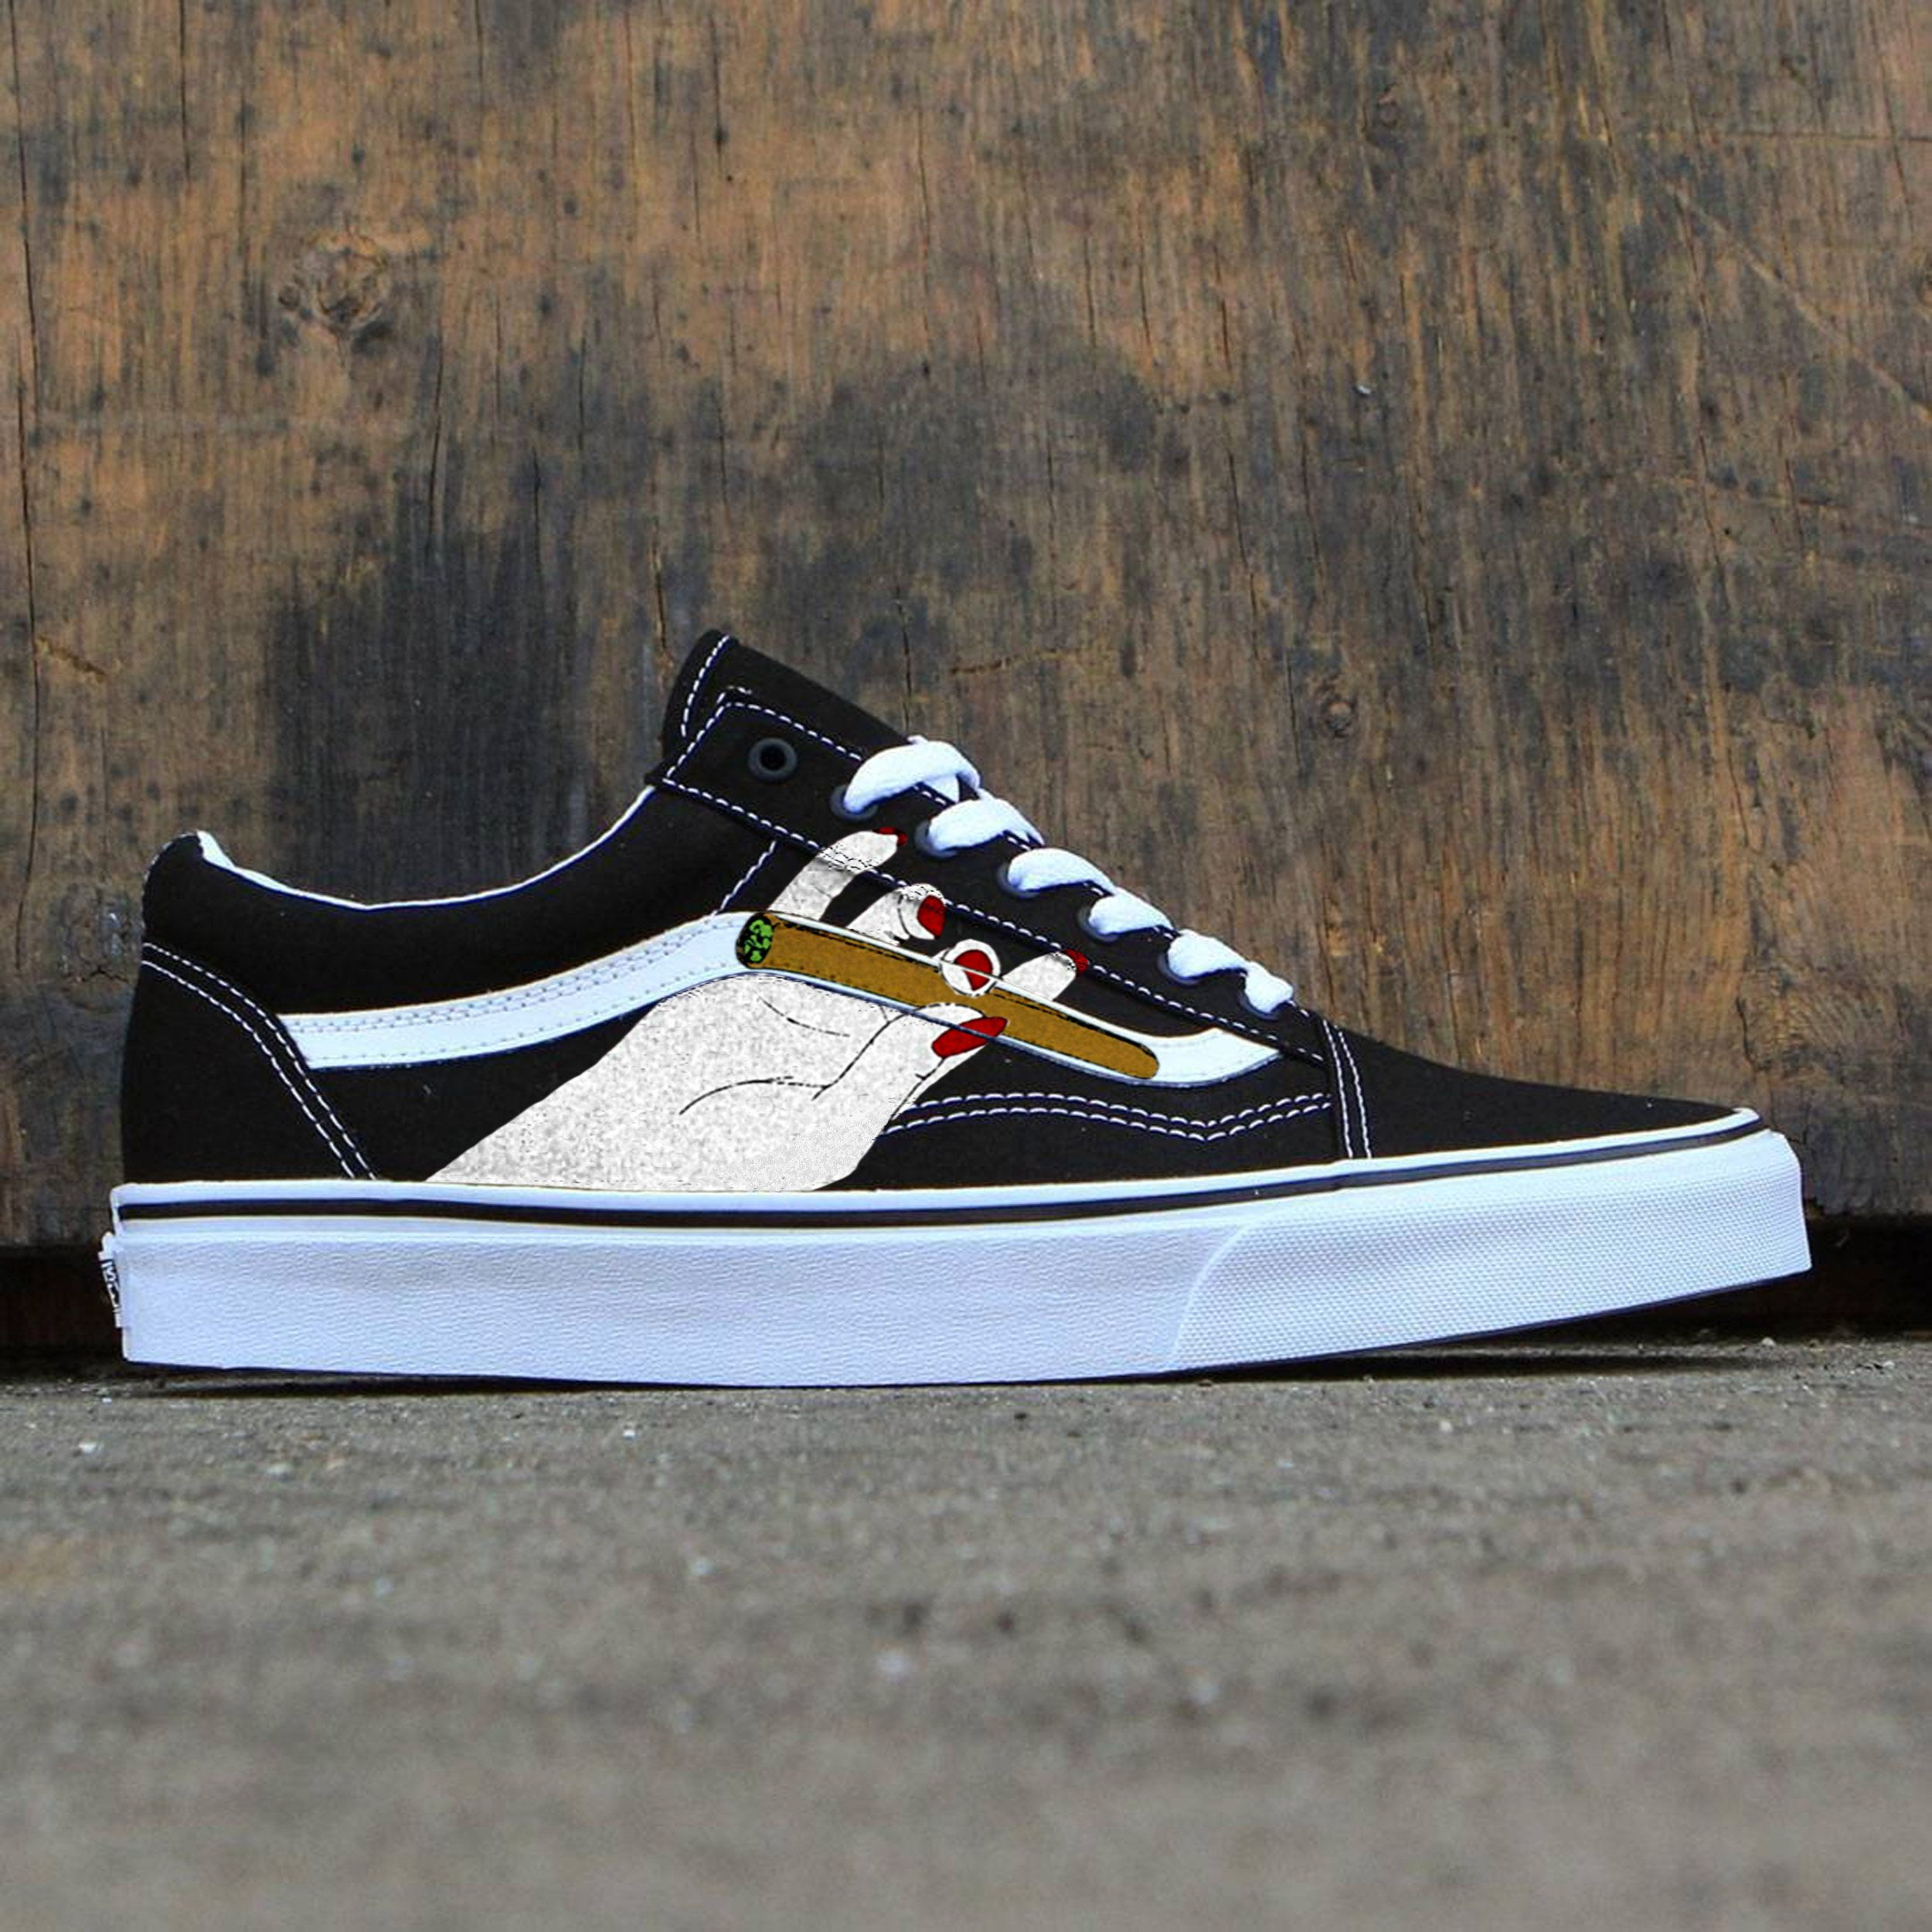 Custom vans old skool 9e570b370